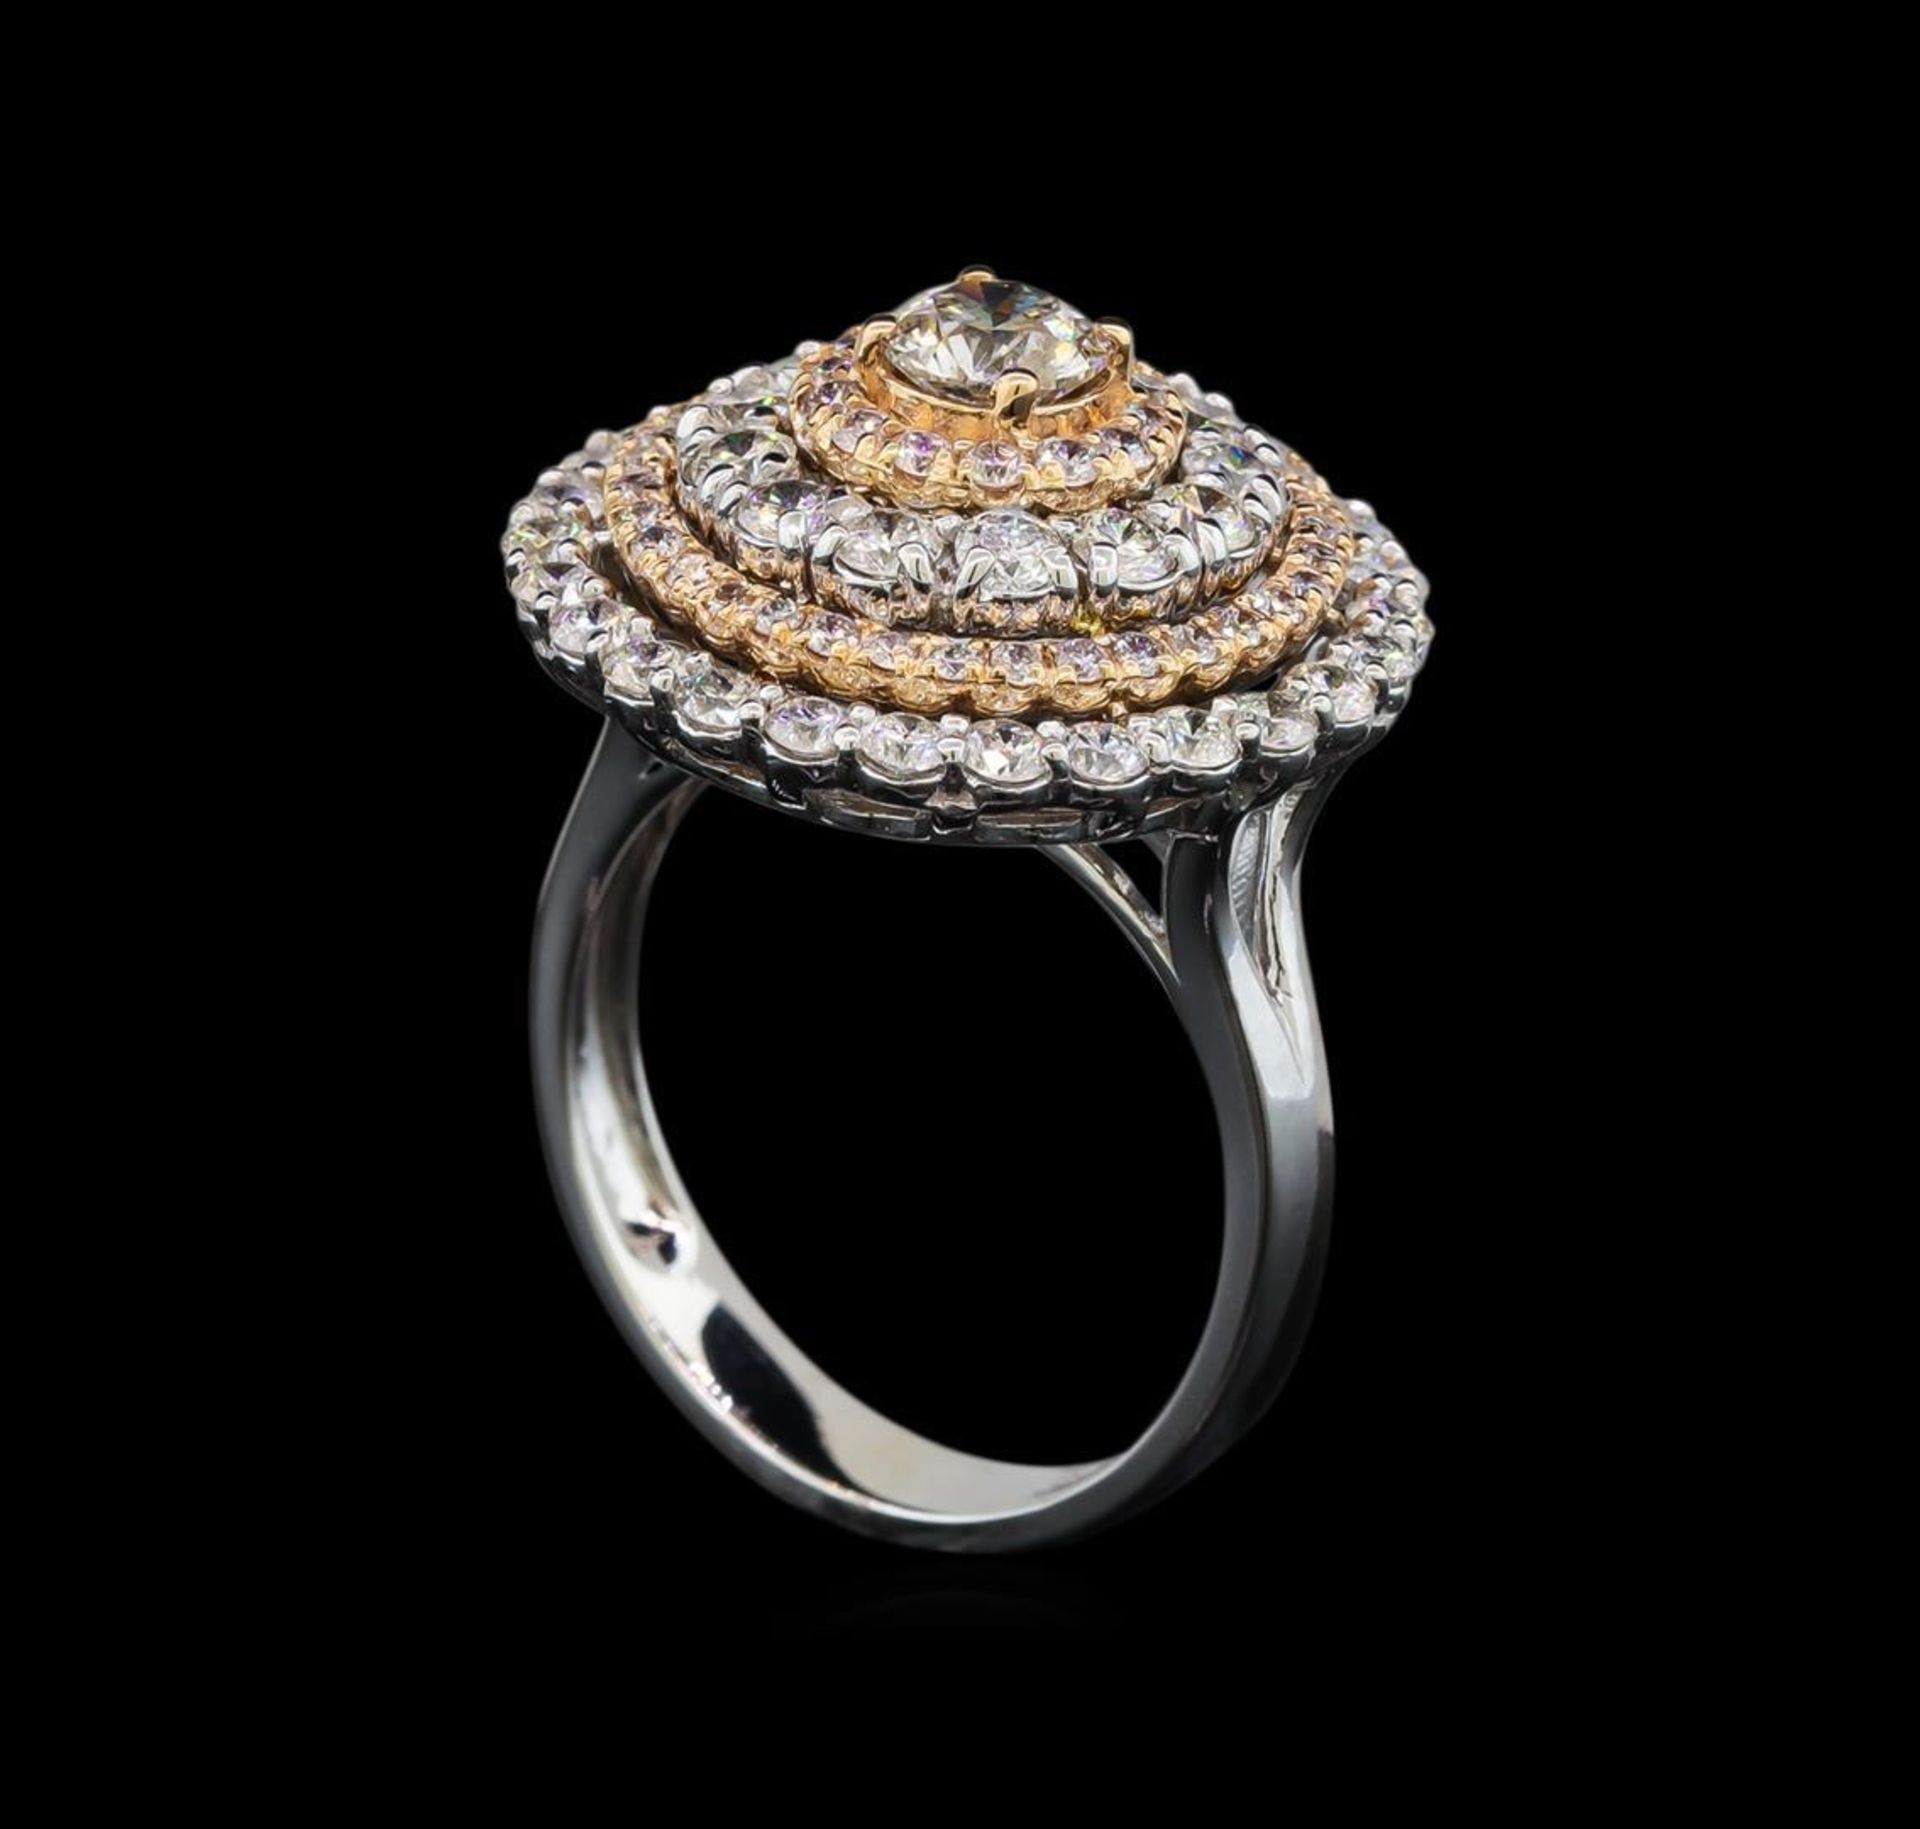 2.53 ctw Diamond Ring - 14KT Rose and White Gold - Image 4 of 6